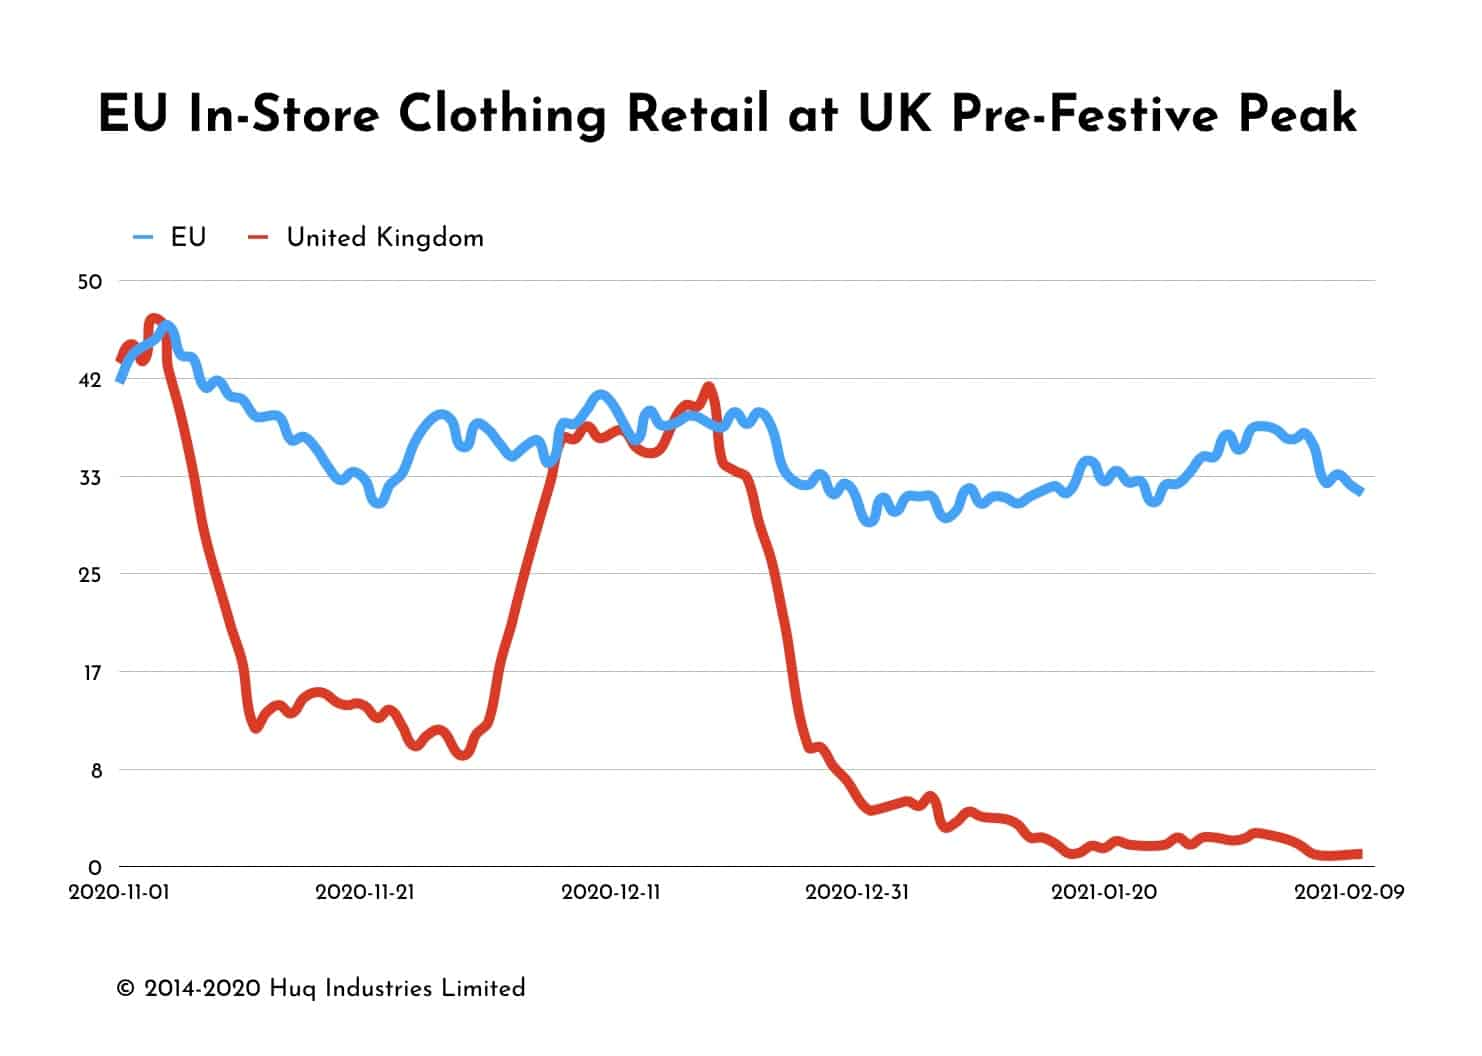 Footfall Data Showa EU Clothing Retail Tracking at UK Pre-Christmas Peak